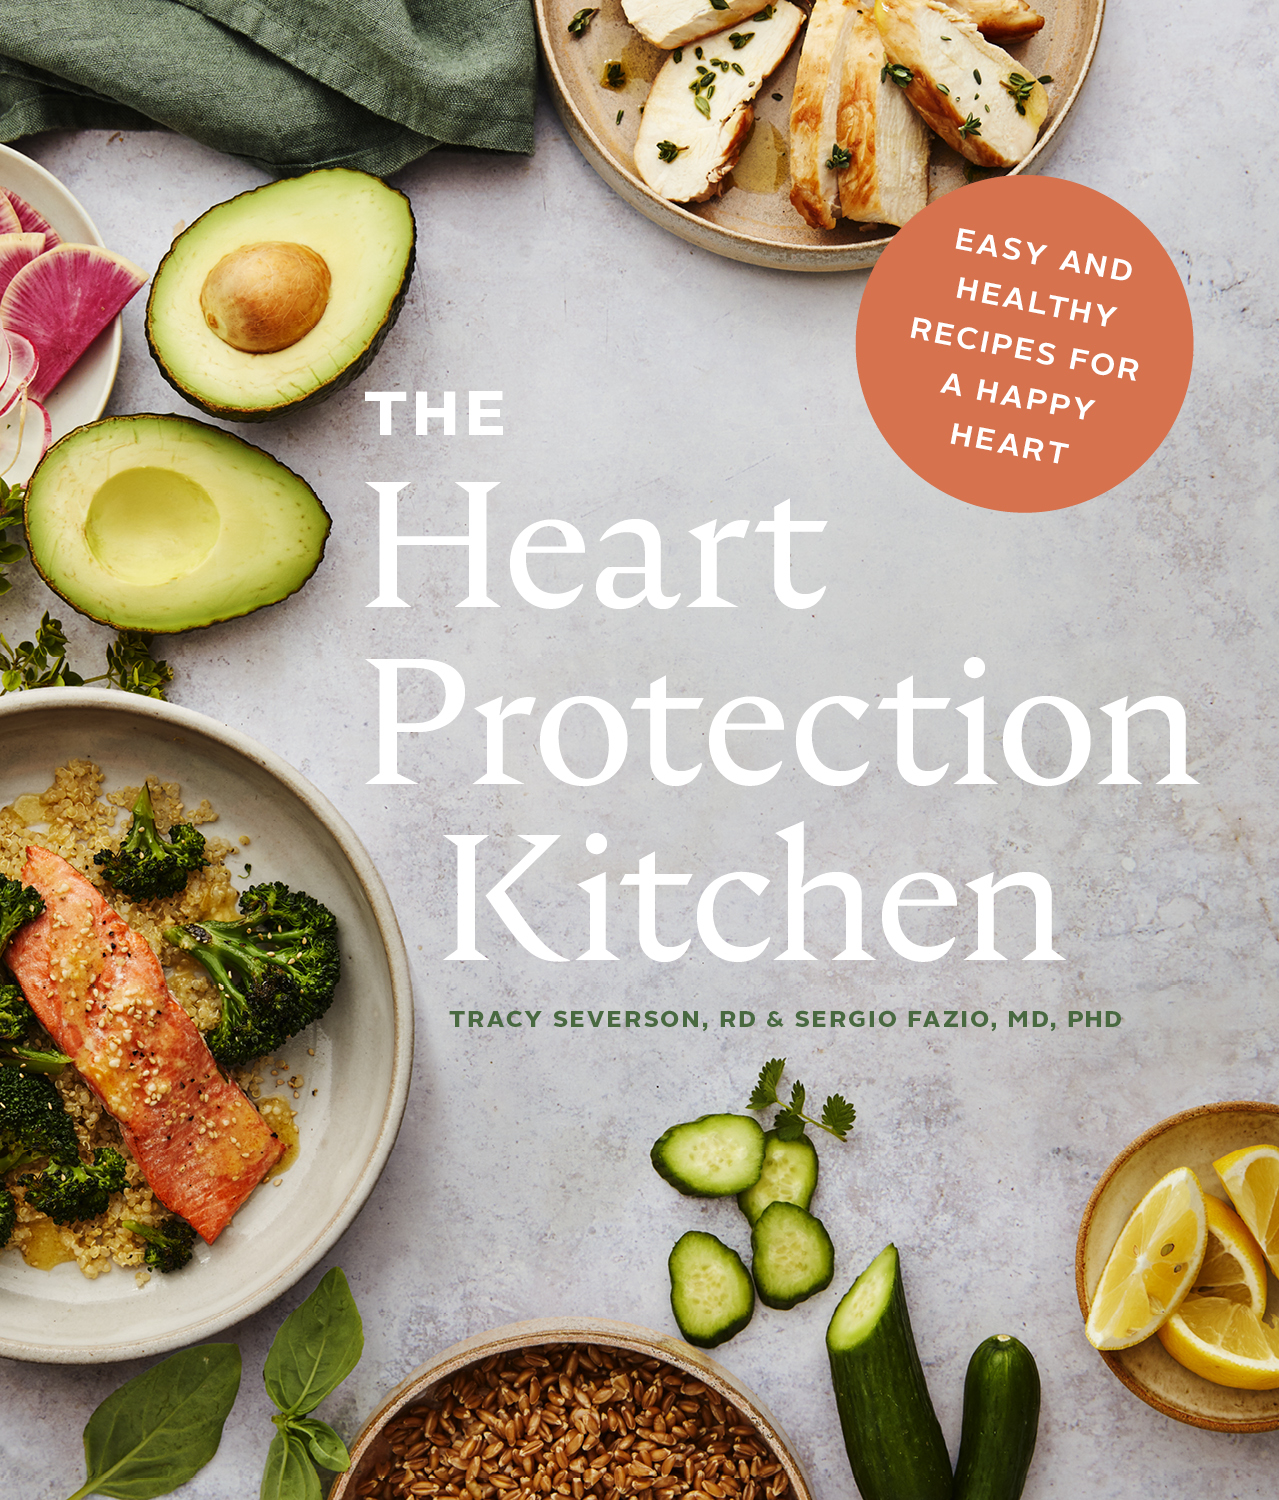 Heart Protection Kitchen, The